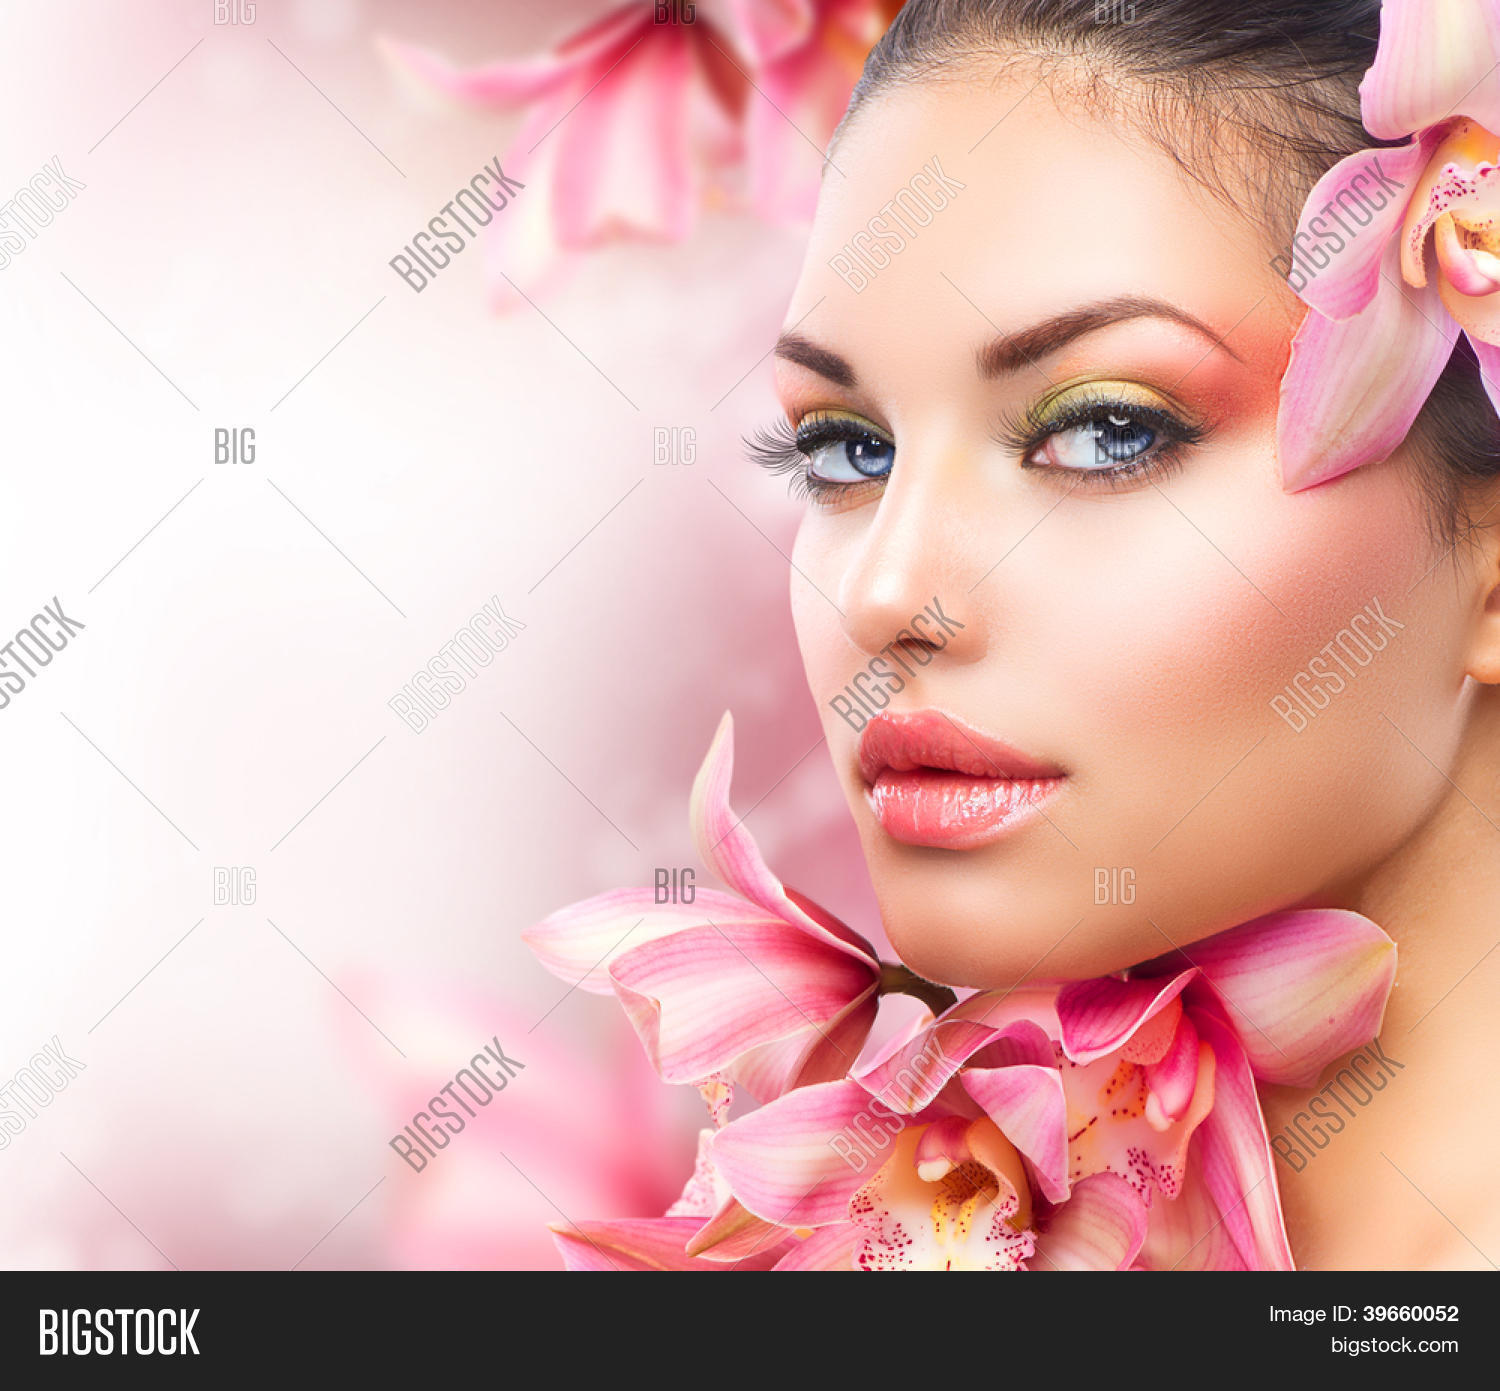 Beautiful Girl Orchid Image & Photo (Free Trial)